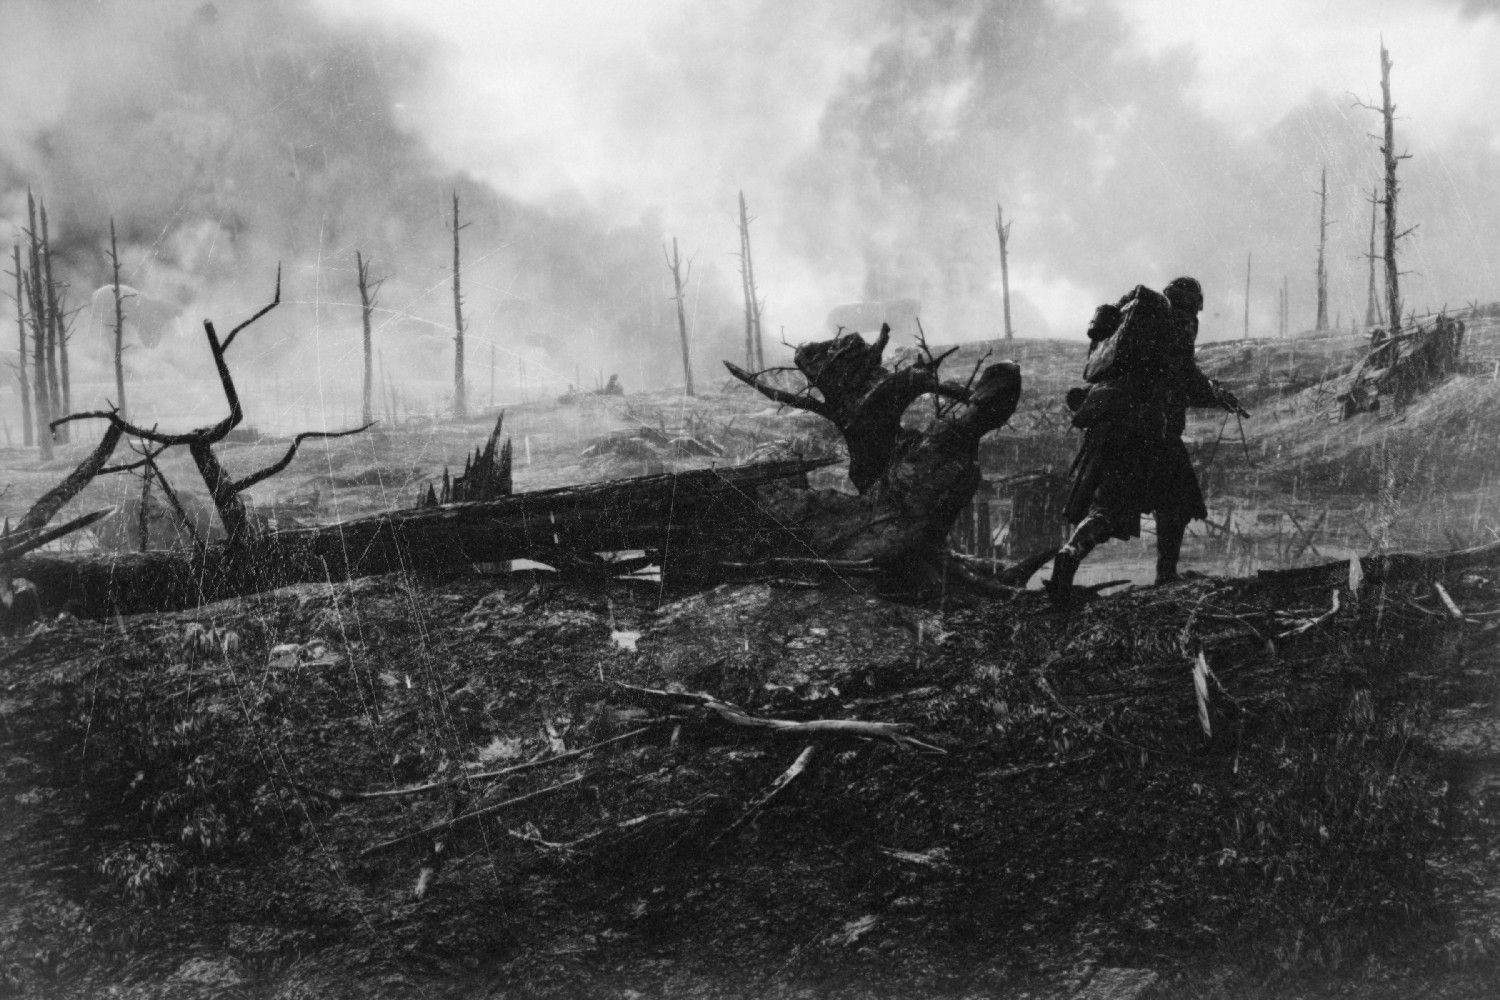 Battlefield 1 In The Style Of First World War Photography